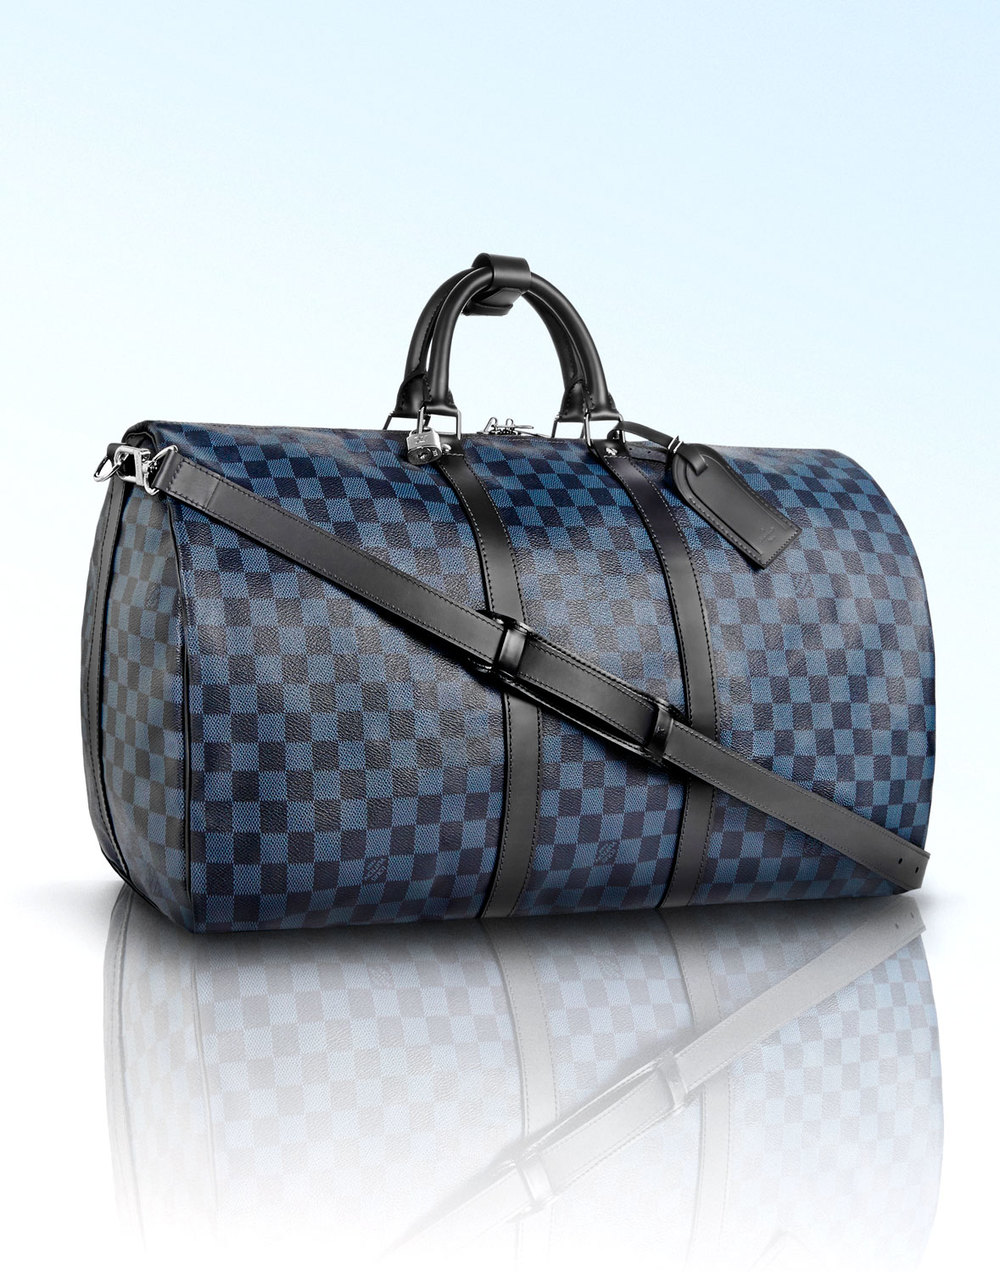 Louis Vuitton Keepball Bag